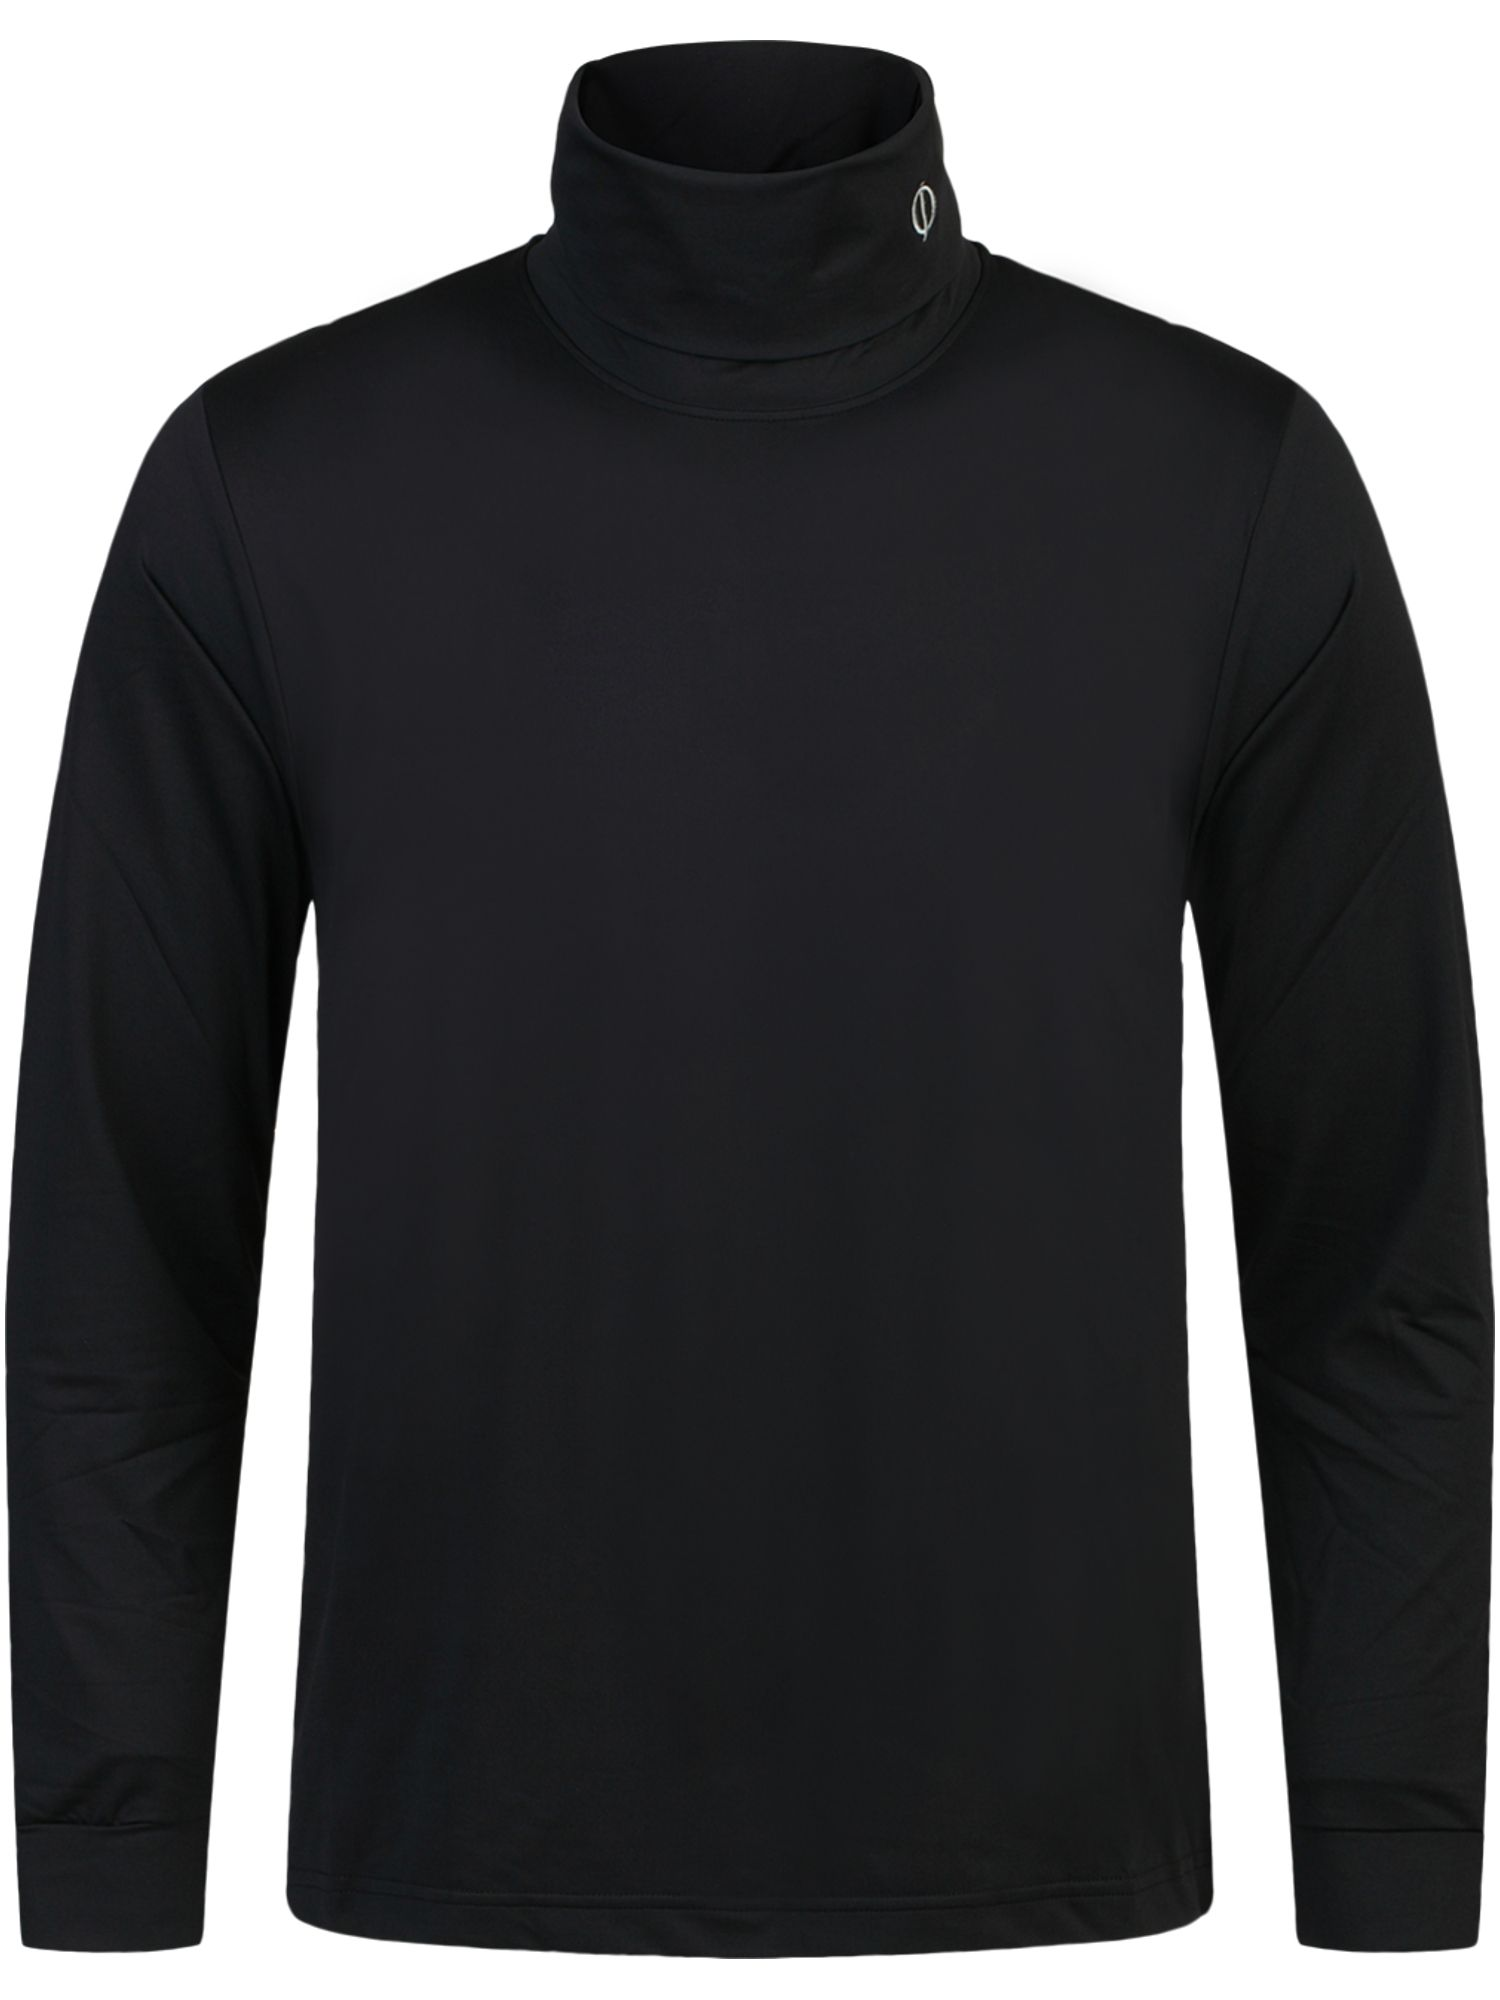 Men's Oscar Jacobson Birk Rollneck, Black